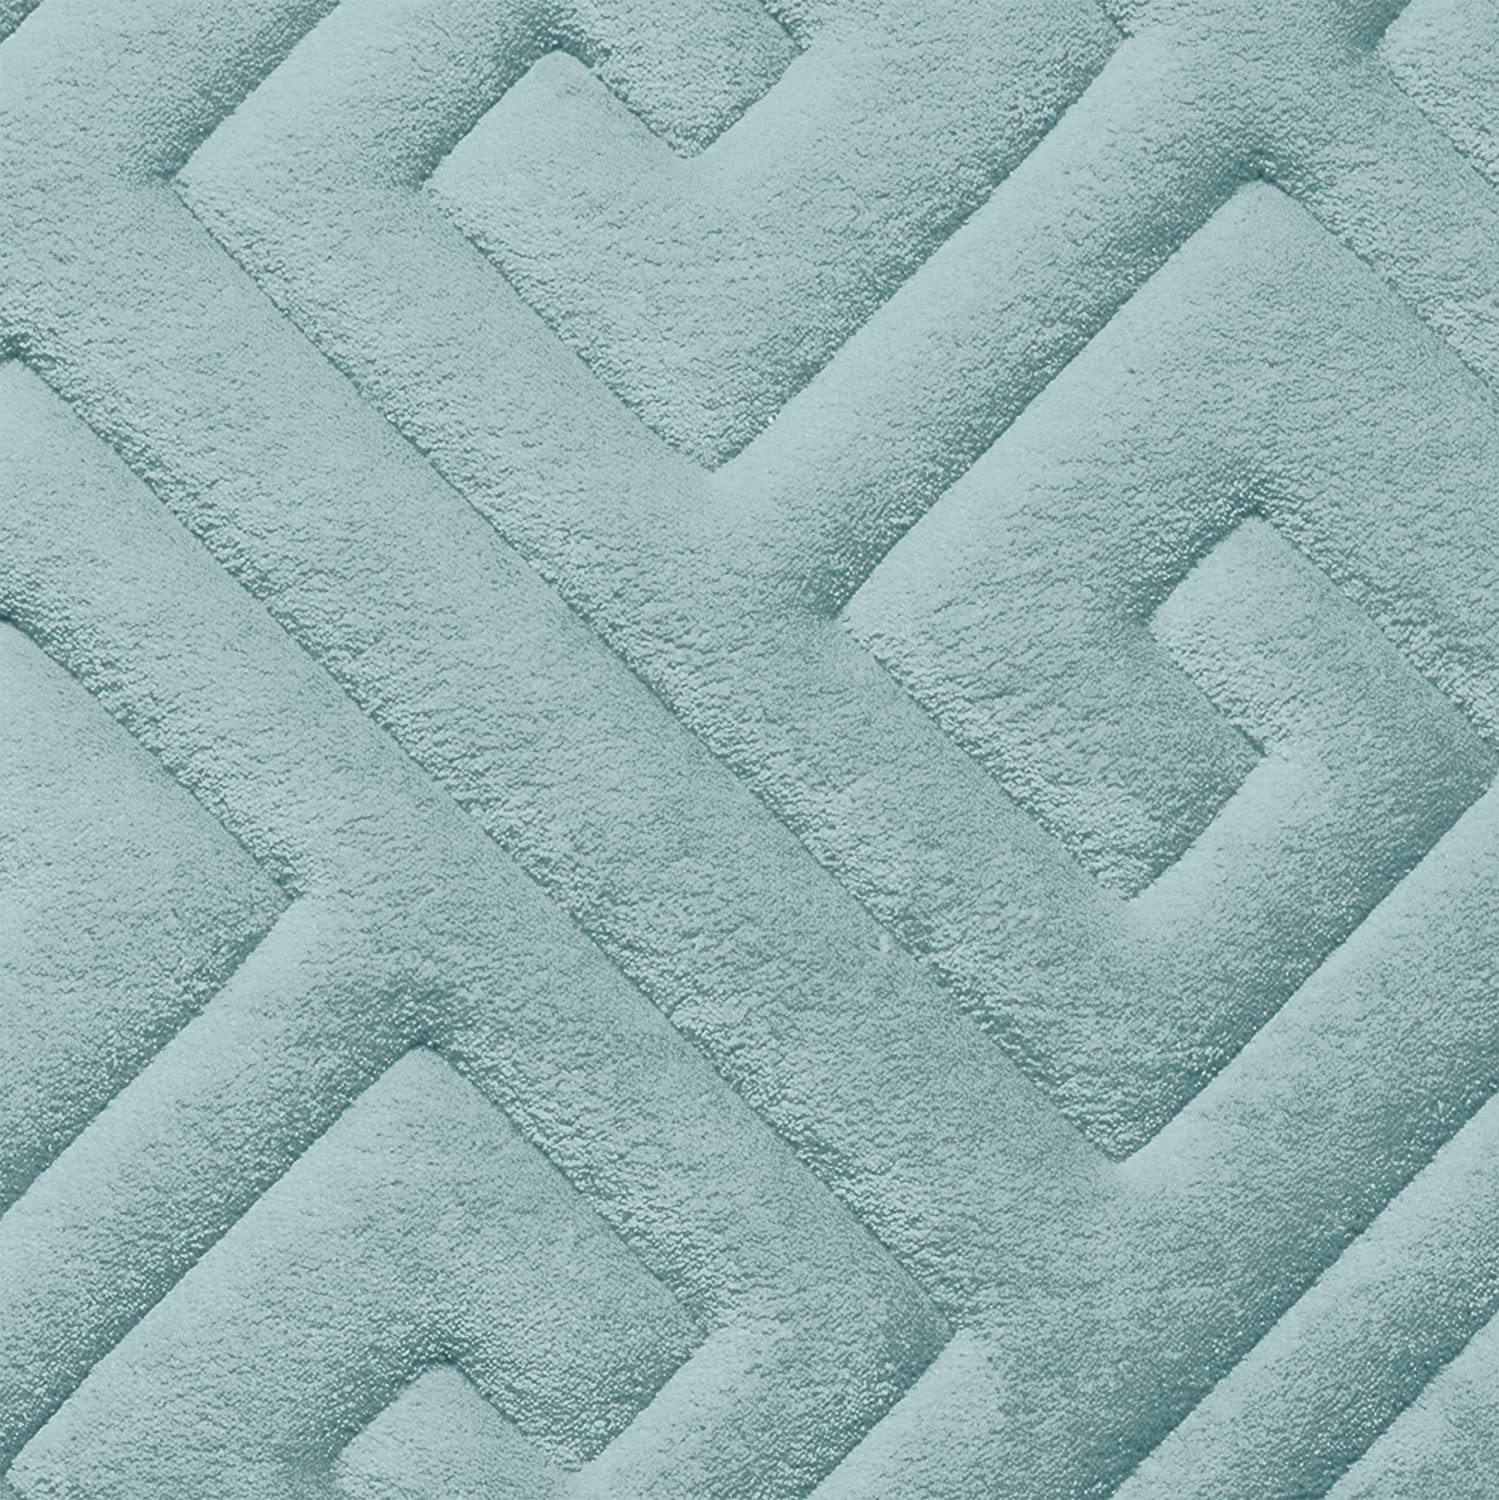 Bounce Comfort Caicos Extra Thick Premium Memory Foam Bath Mat with BounceComfort Technology 20 x 32 Aqua 20 x 32 Aqua Creative Home Ideas YMB003631